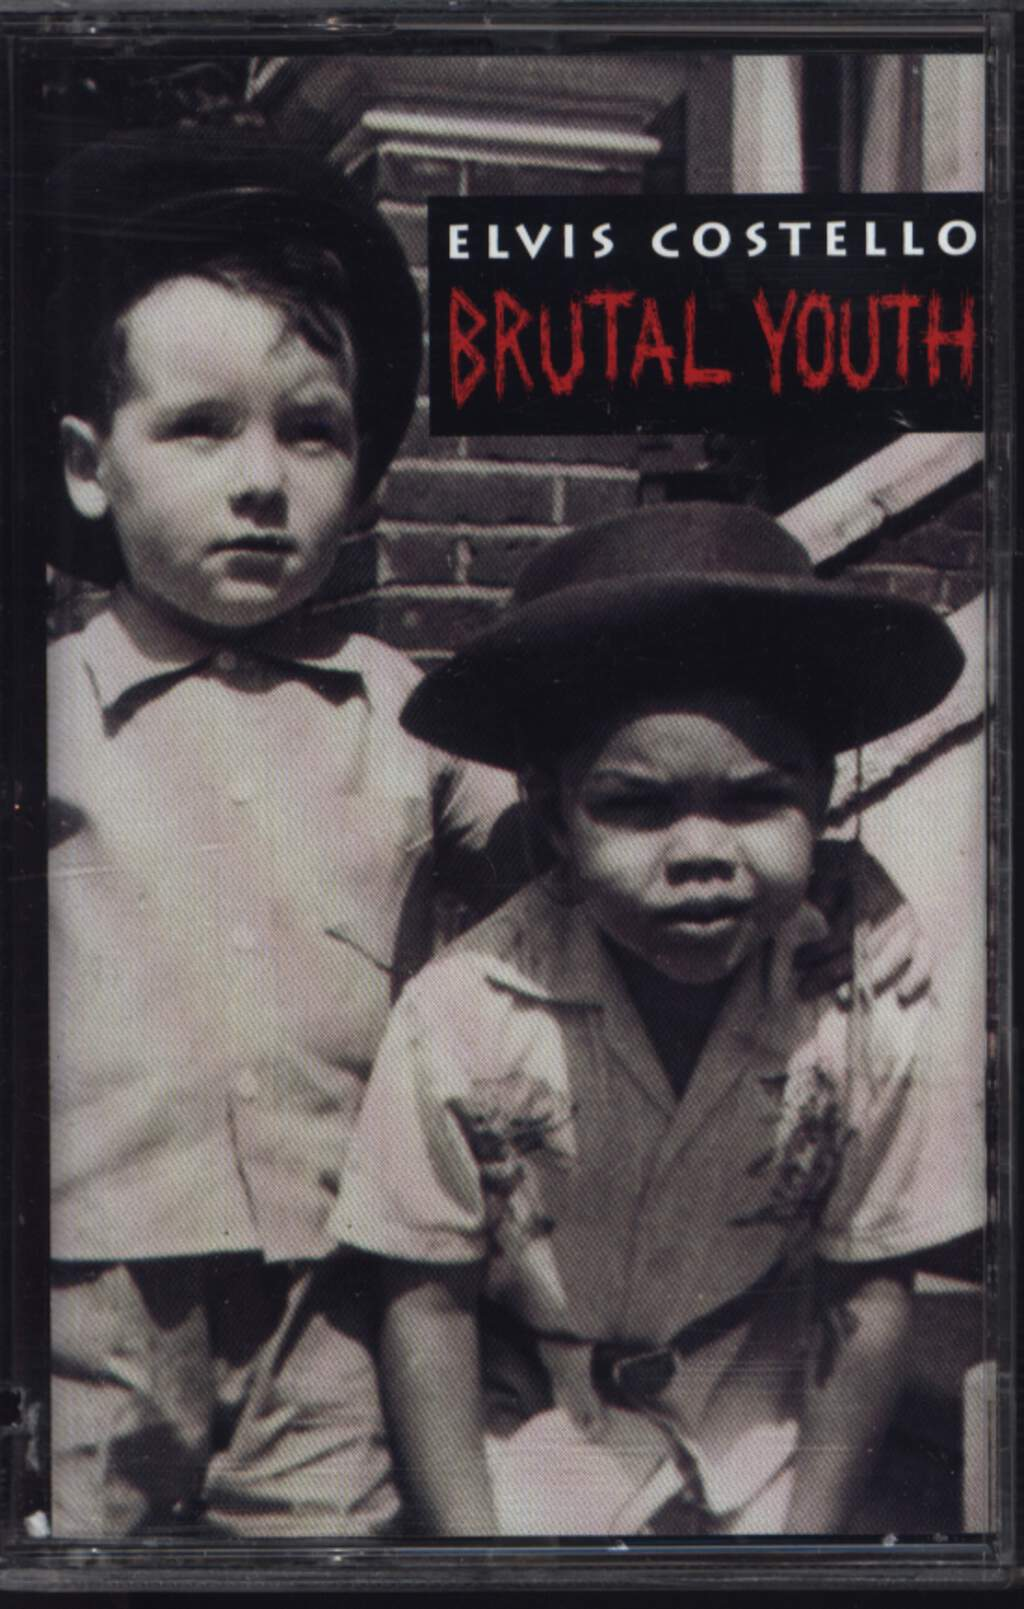 Elvis Costello: Brutal Youth, Compact Cassette